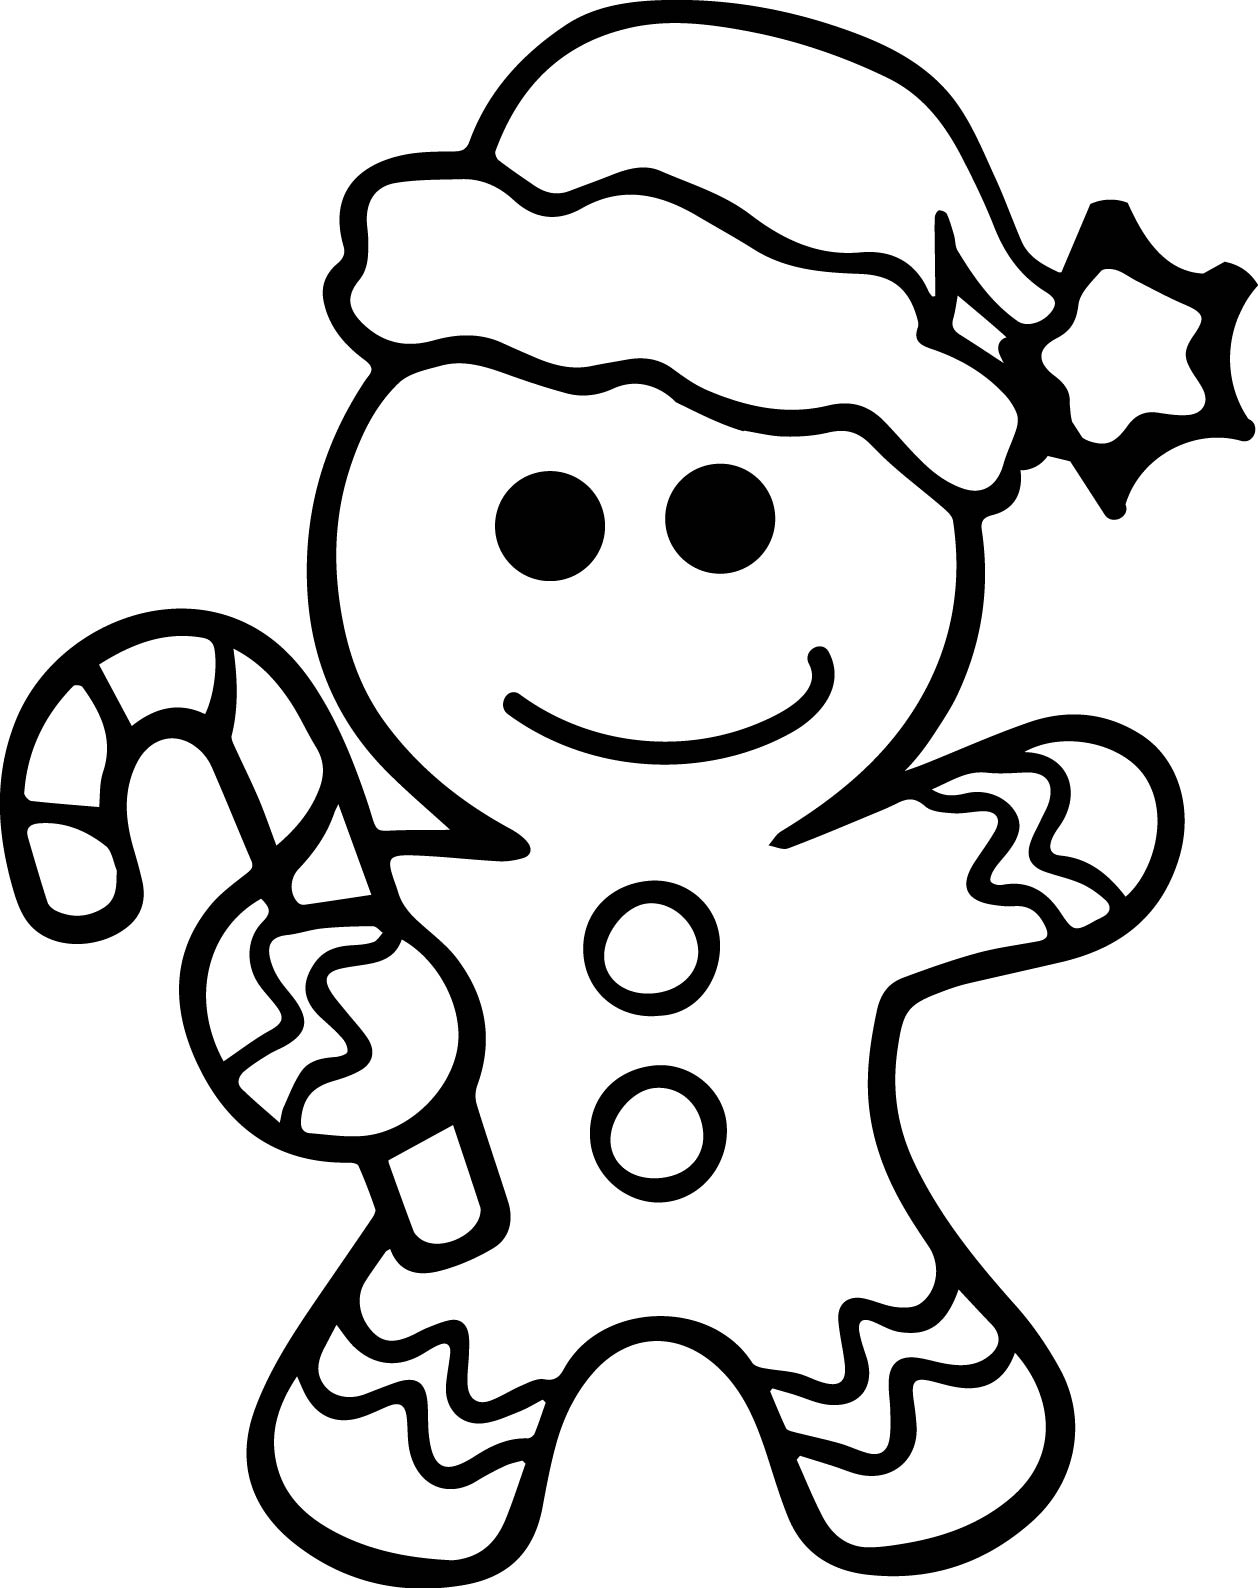 1258x1588 Free Coloring Pages Printable Coloring Pages Christmas Gingerbread